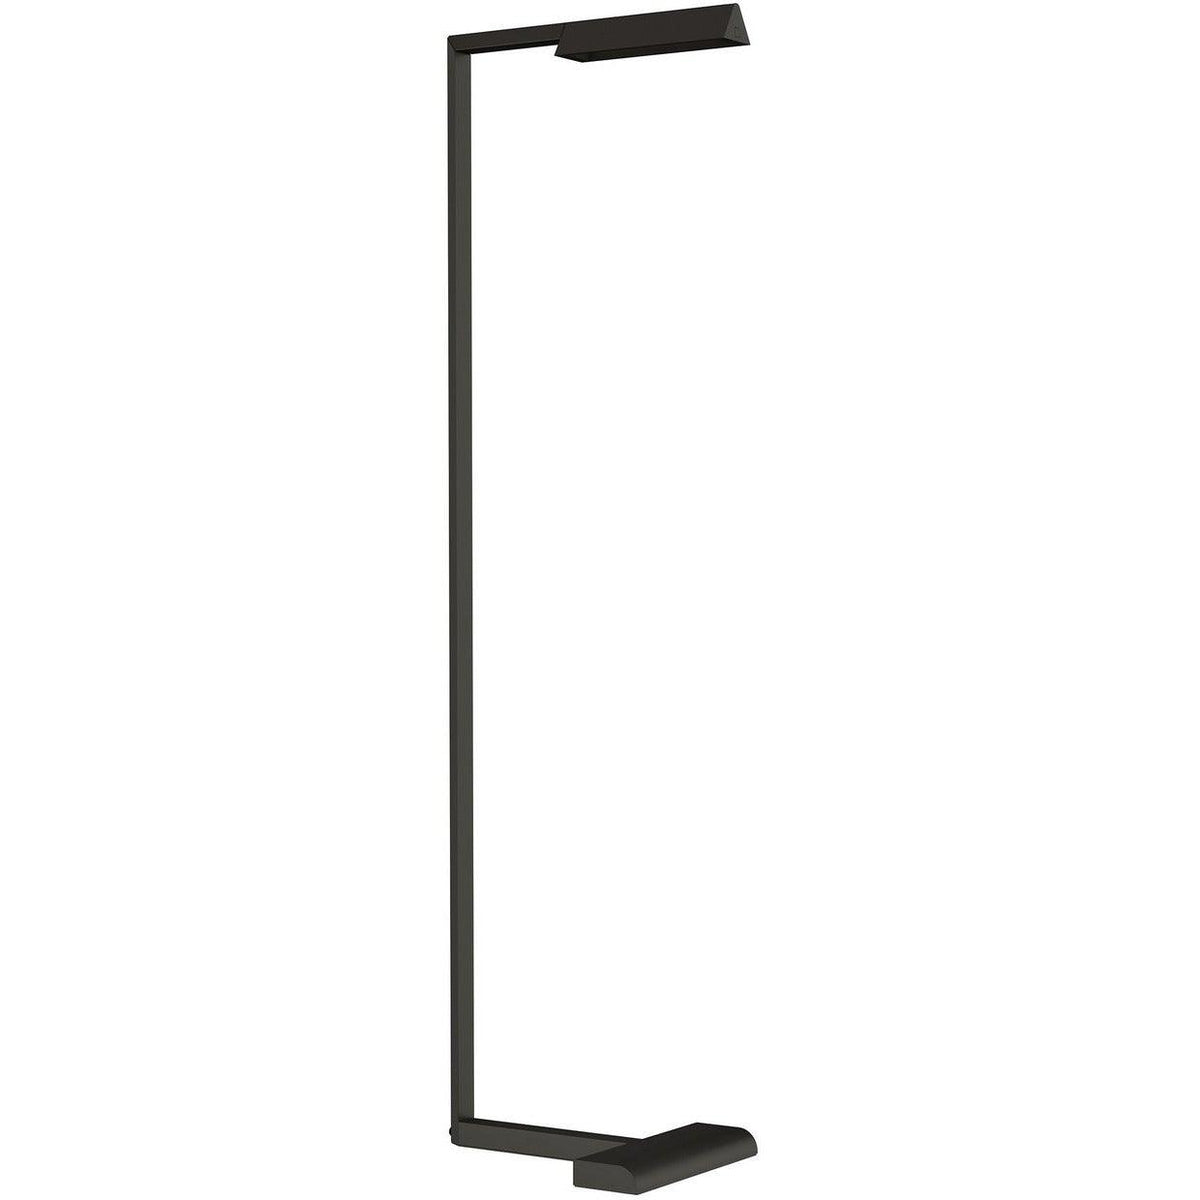 Tech Lighting - 700PRTDES46B-LED927 - LED Floor Lamp - Dessau - Nightshade Black